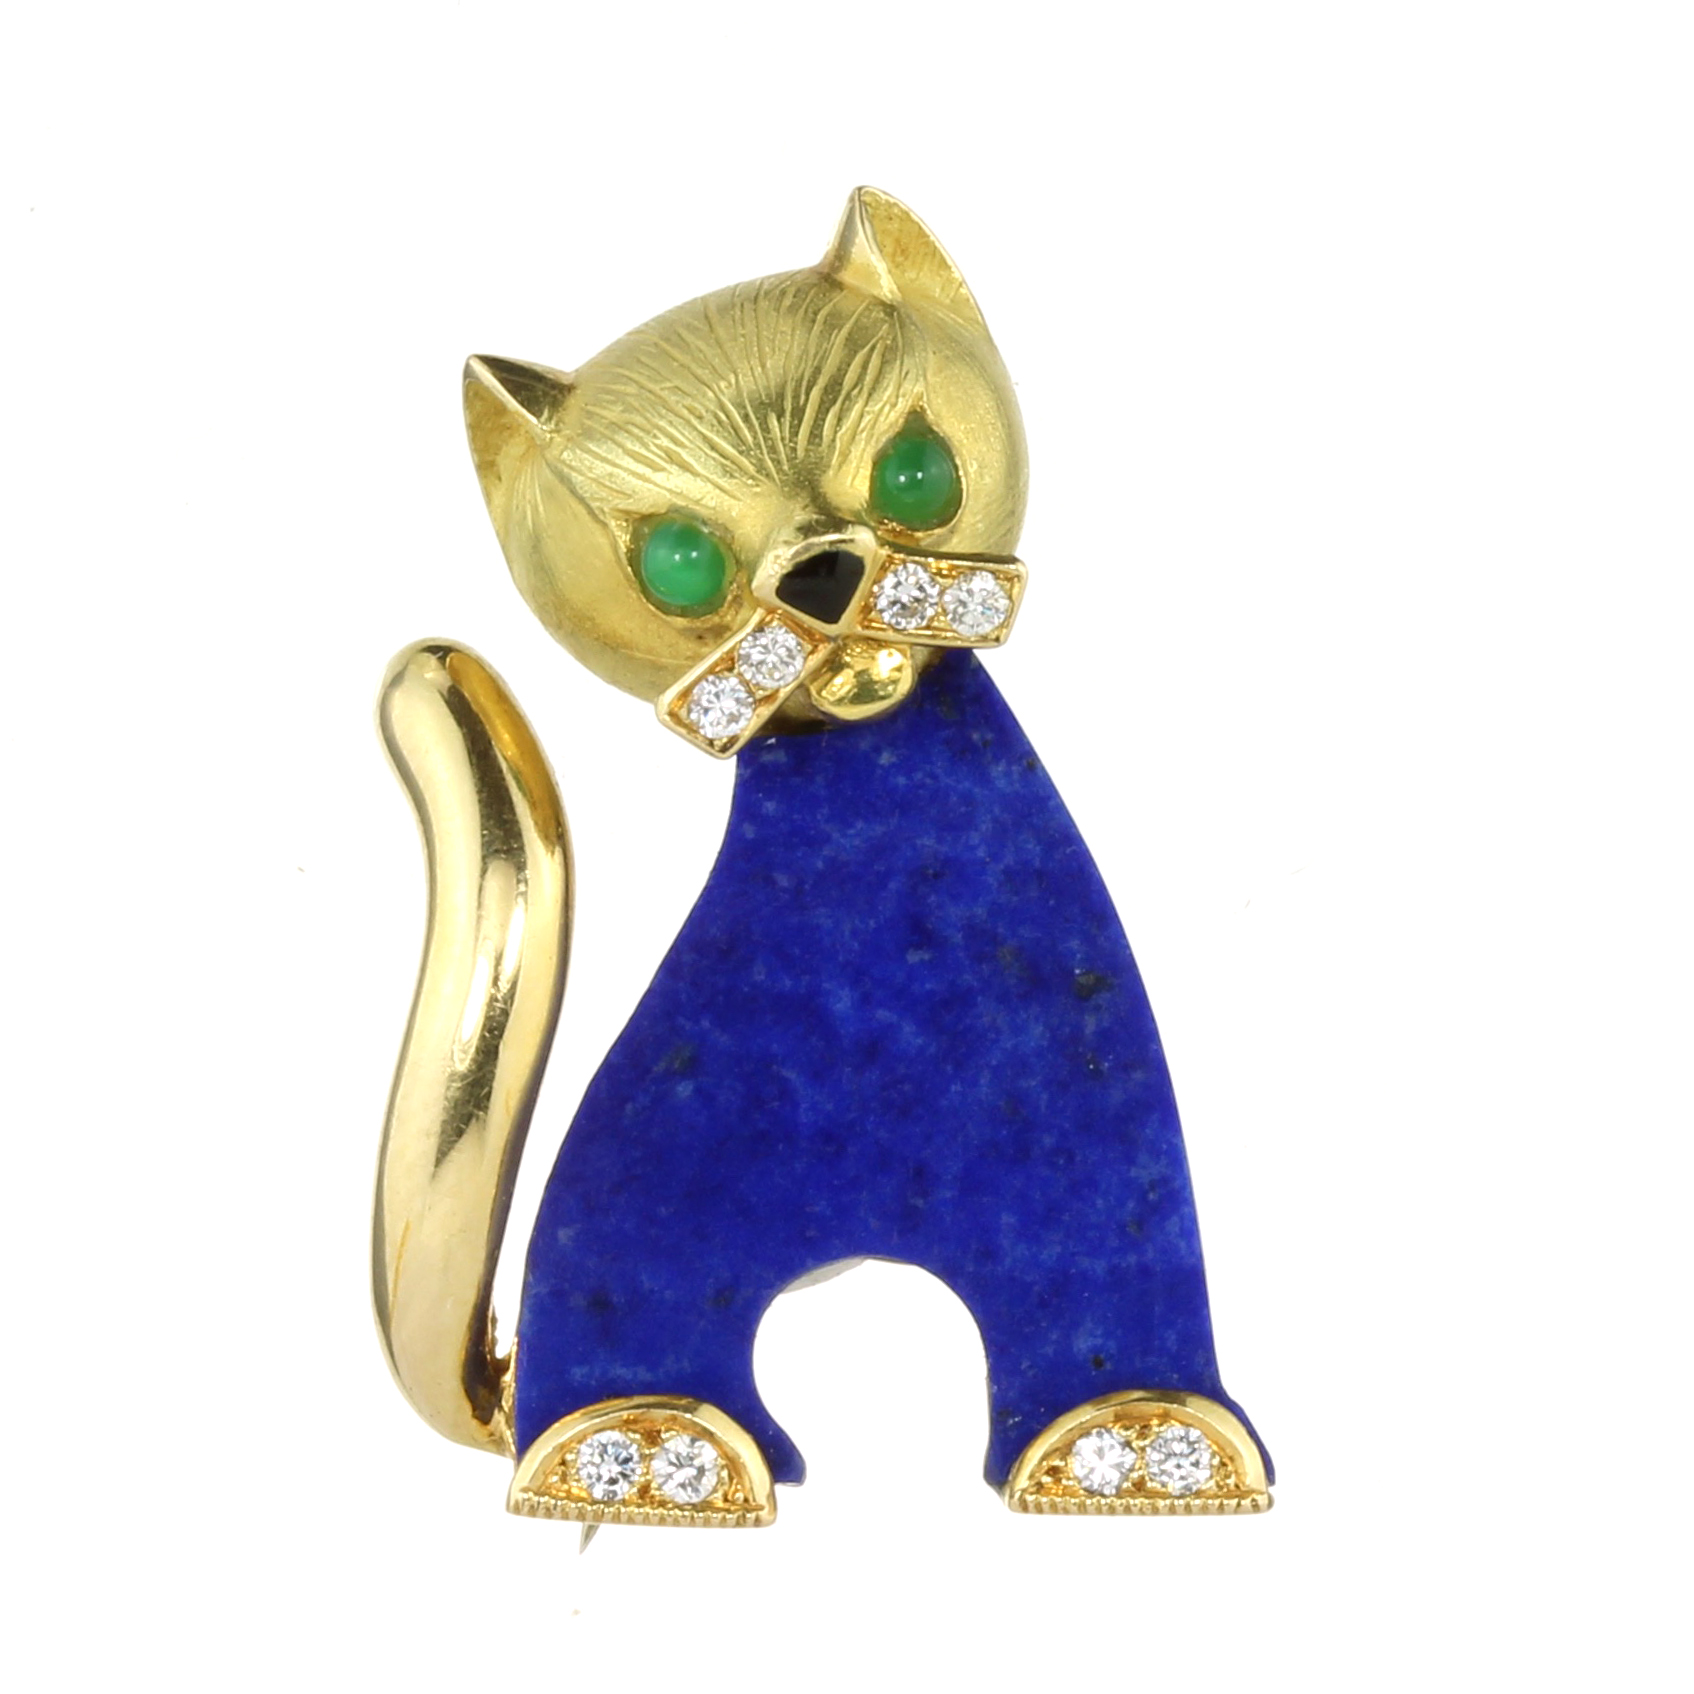 Los 35 - A LAPIS LAZULI, DIAMOND AND EMERALD CAT BROOCH in 18ct yellow gold, the flat carved lapis lazuli